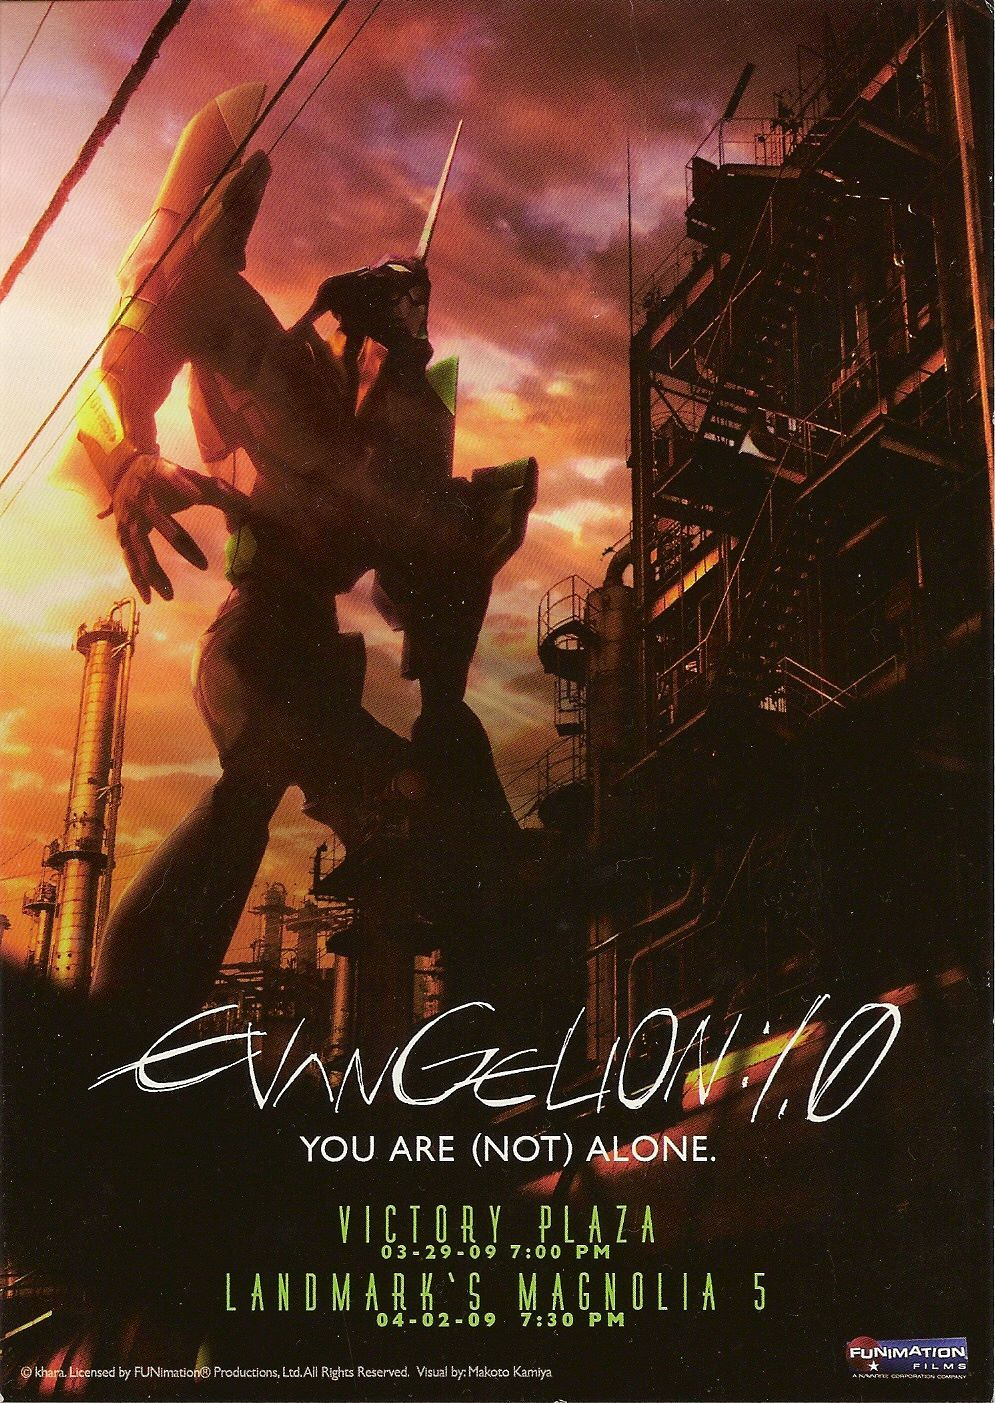 Il Rebuild of Evangelion (non) è un sequel [1/2] — Project EVA